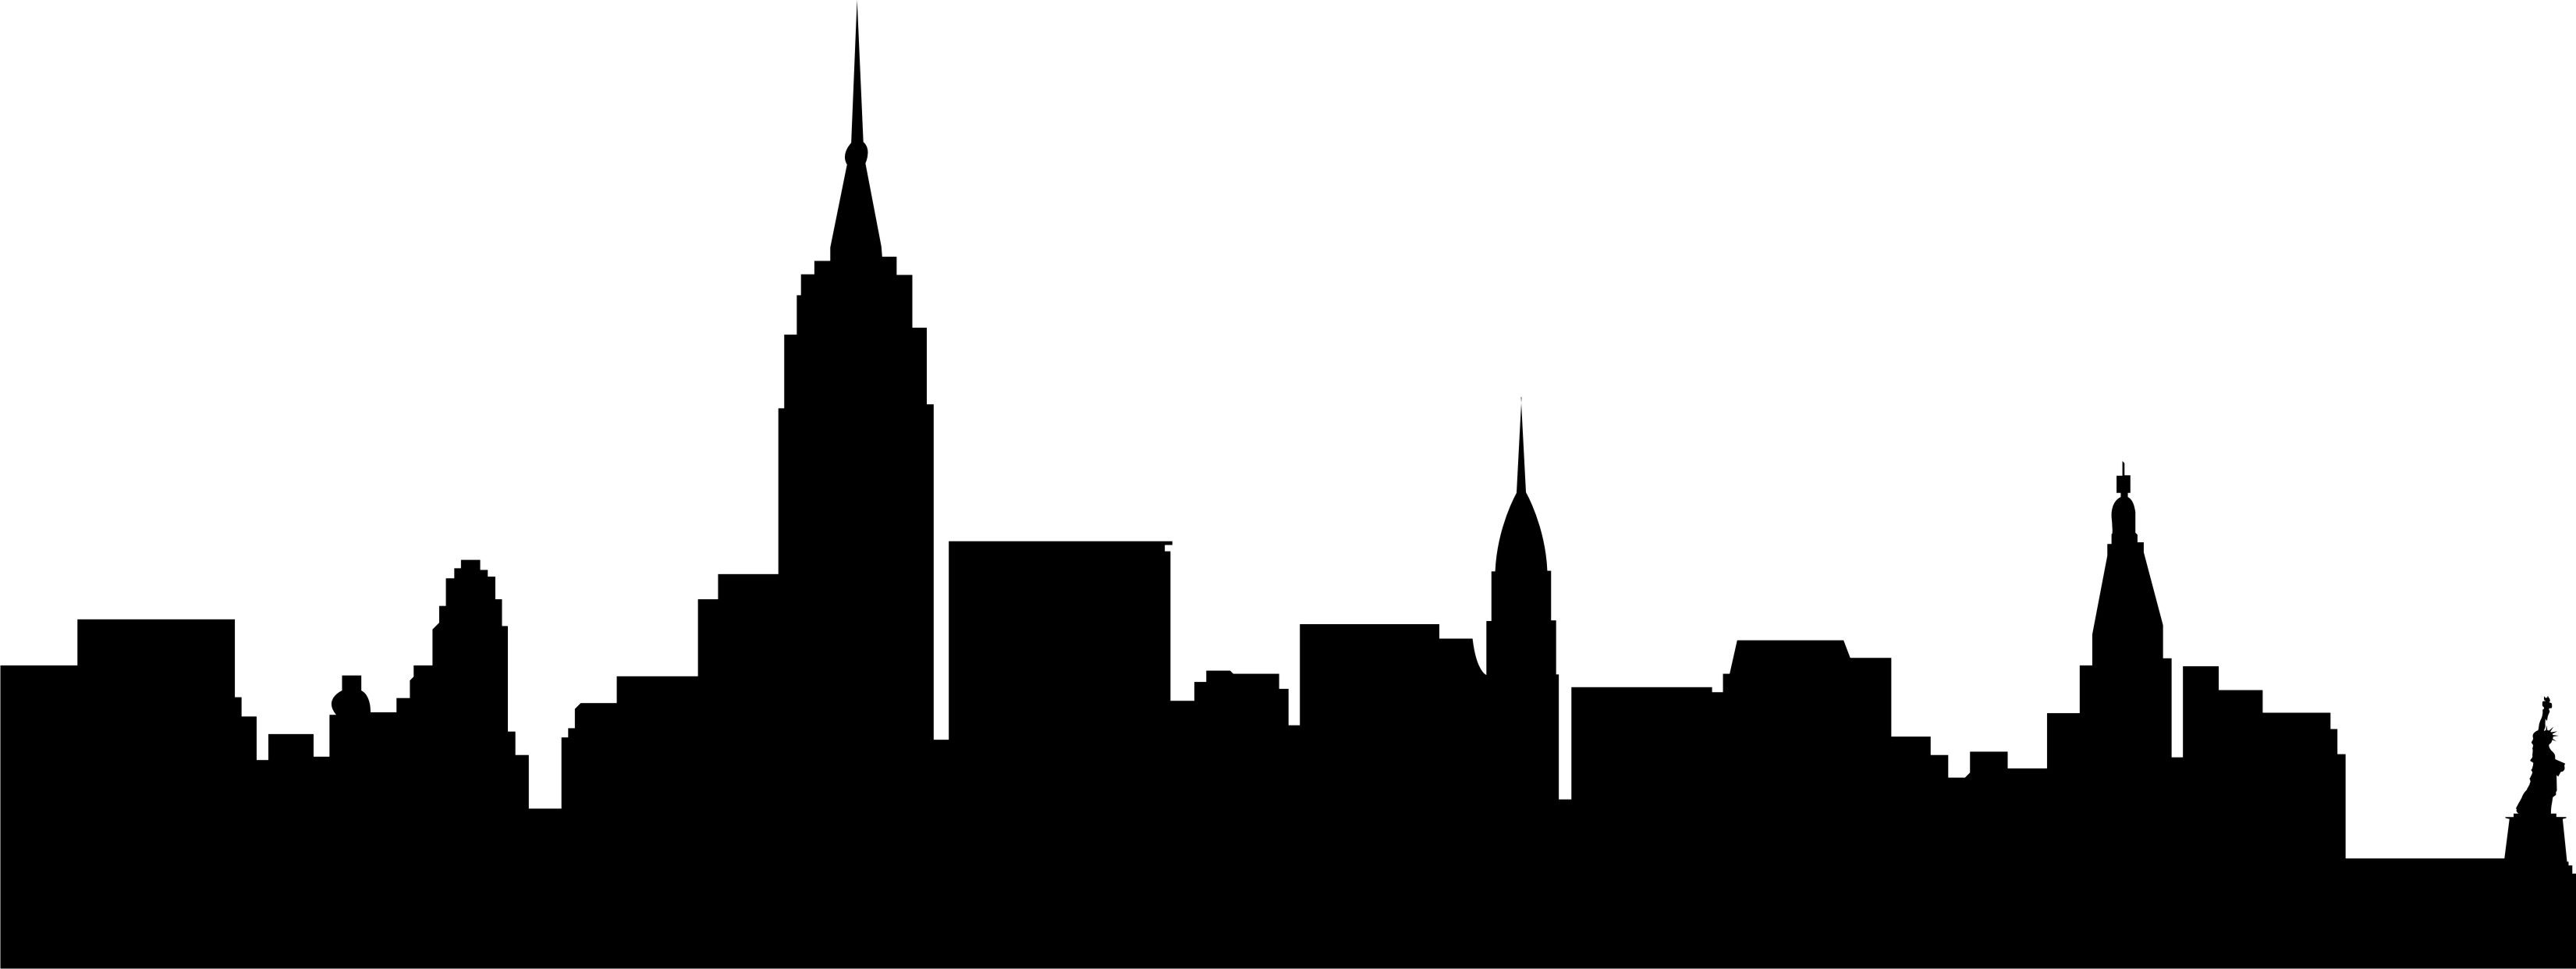 city skyline silhouette clip art at getdrawings com free for rh getdrawings com city skyline clipart png city skyline clipart